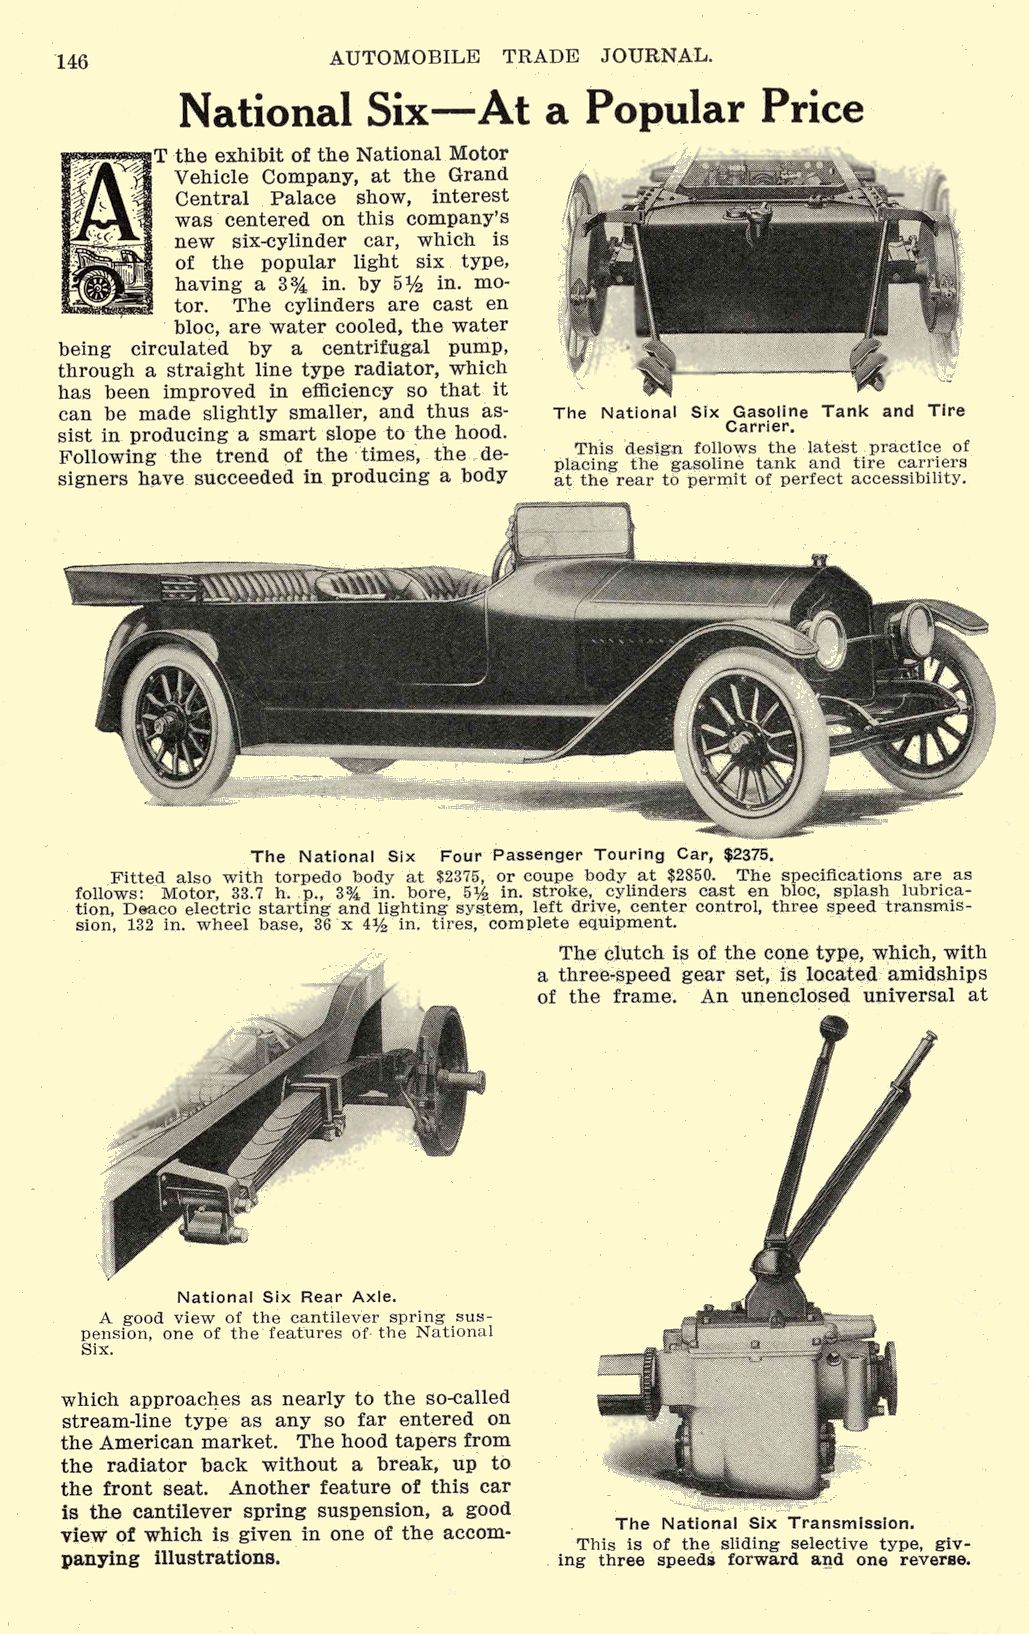 1914 2 NATIONAL Article National Six – At a Popular Price National Motor Vehicle Company Indianapolis, IND AUTOMOBILE TRADE JOURNAL February 1914 6.5″x9.75″ page 146